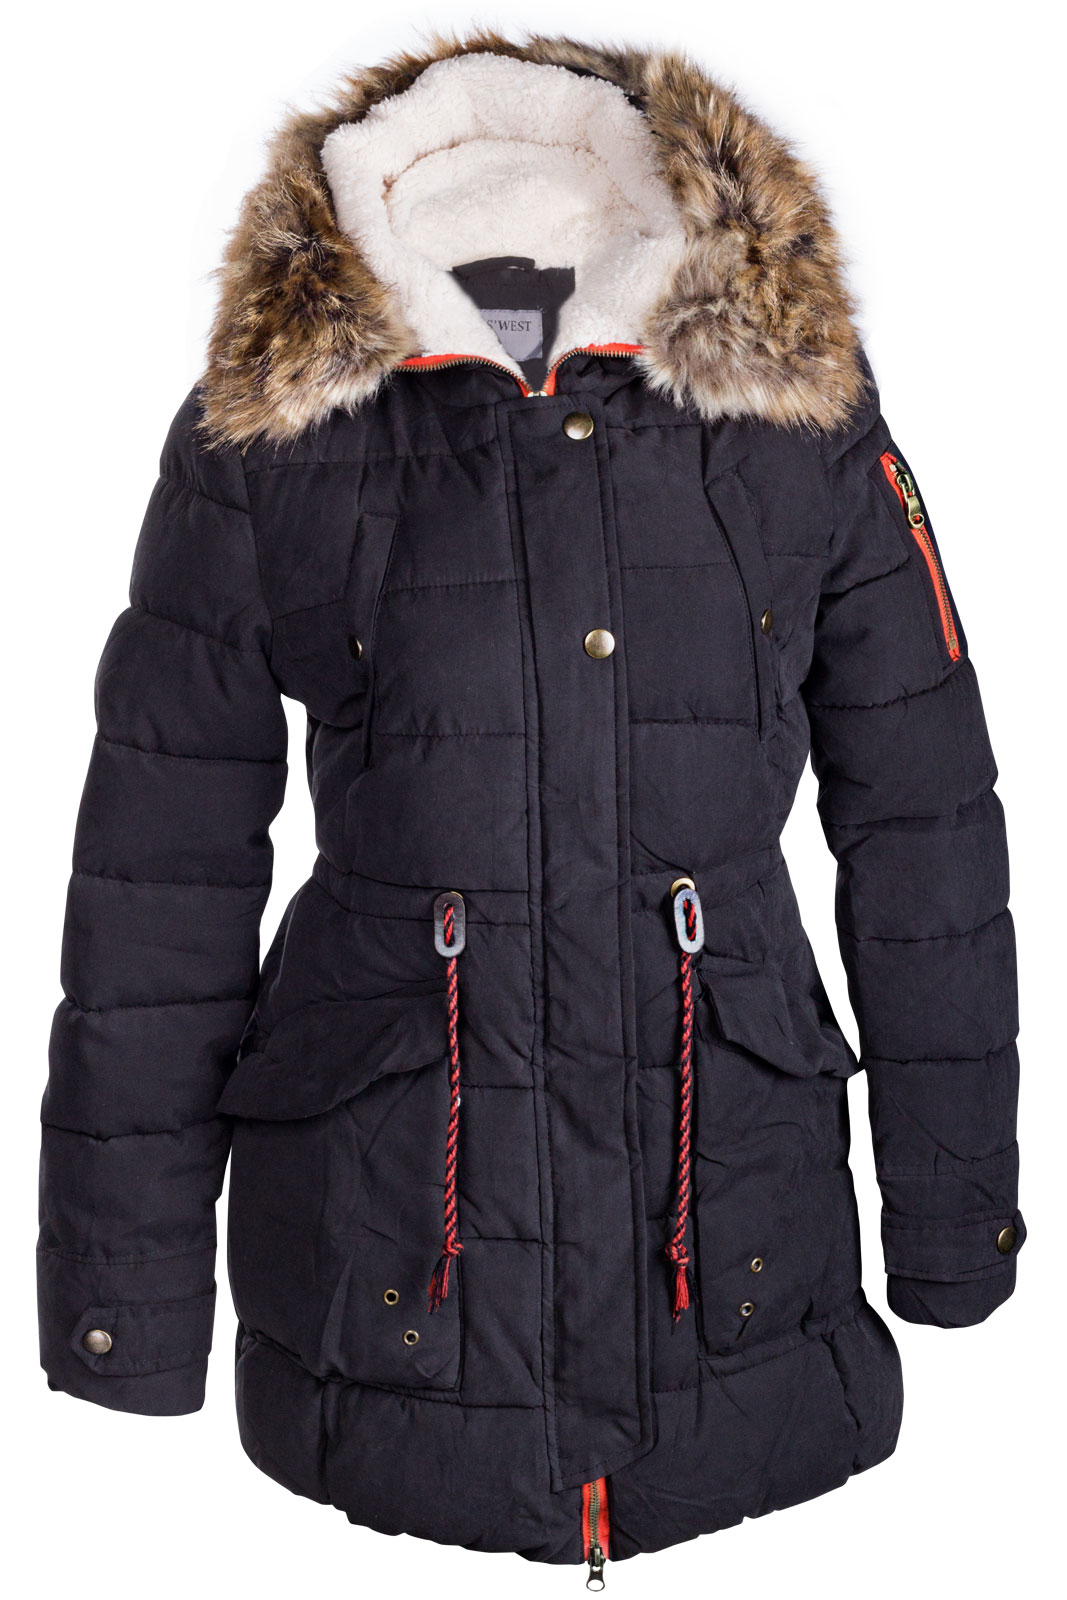 damen winter mantel jacke fell 2 in 1 kapuze stepp parka. Black Bedroom Furniture Sets. Home Design Ideas